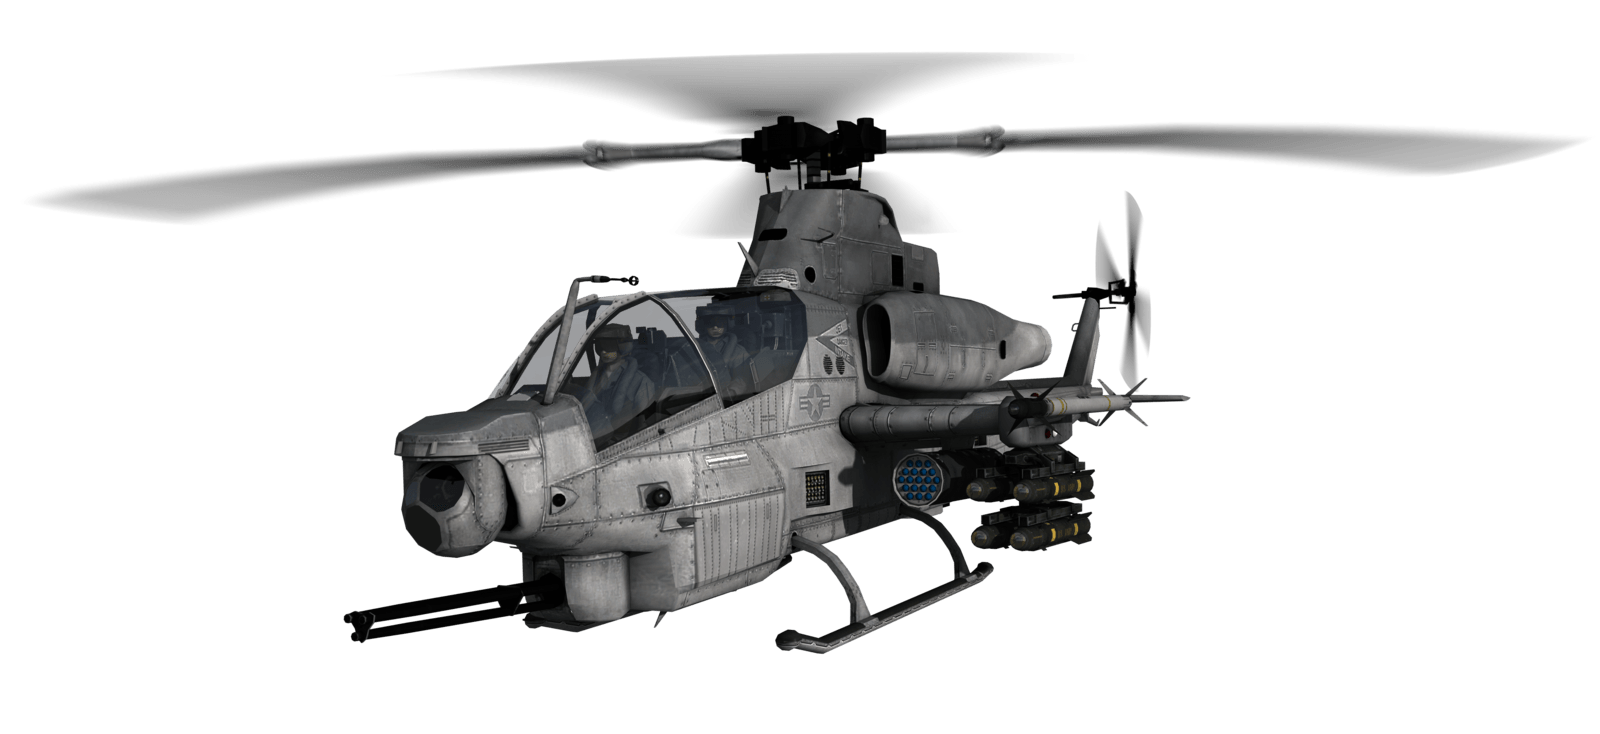 Illustration Army Helicopter - Army Helicopter PNG